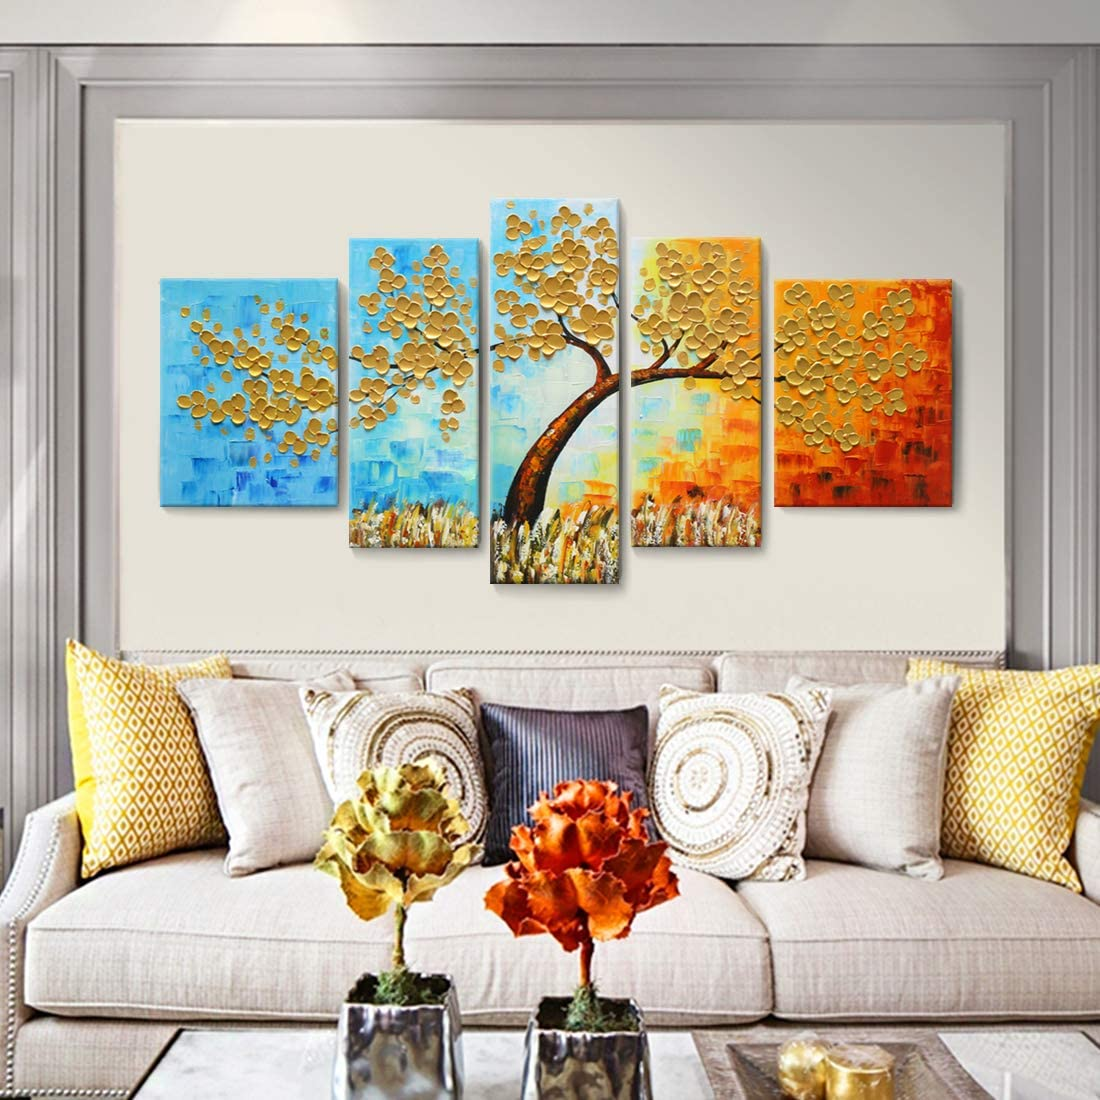 Extra Large Wall Art 100 Hand-Painted Oil Painting on Canvas 3D Colorful Tree Artwork Palette Knife Impasto Texture 5 Pieces Abstract Golden Paintings for Living Room Bedroom Office D cor